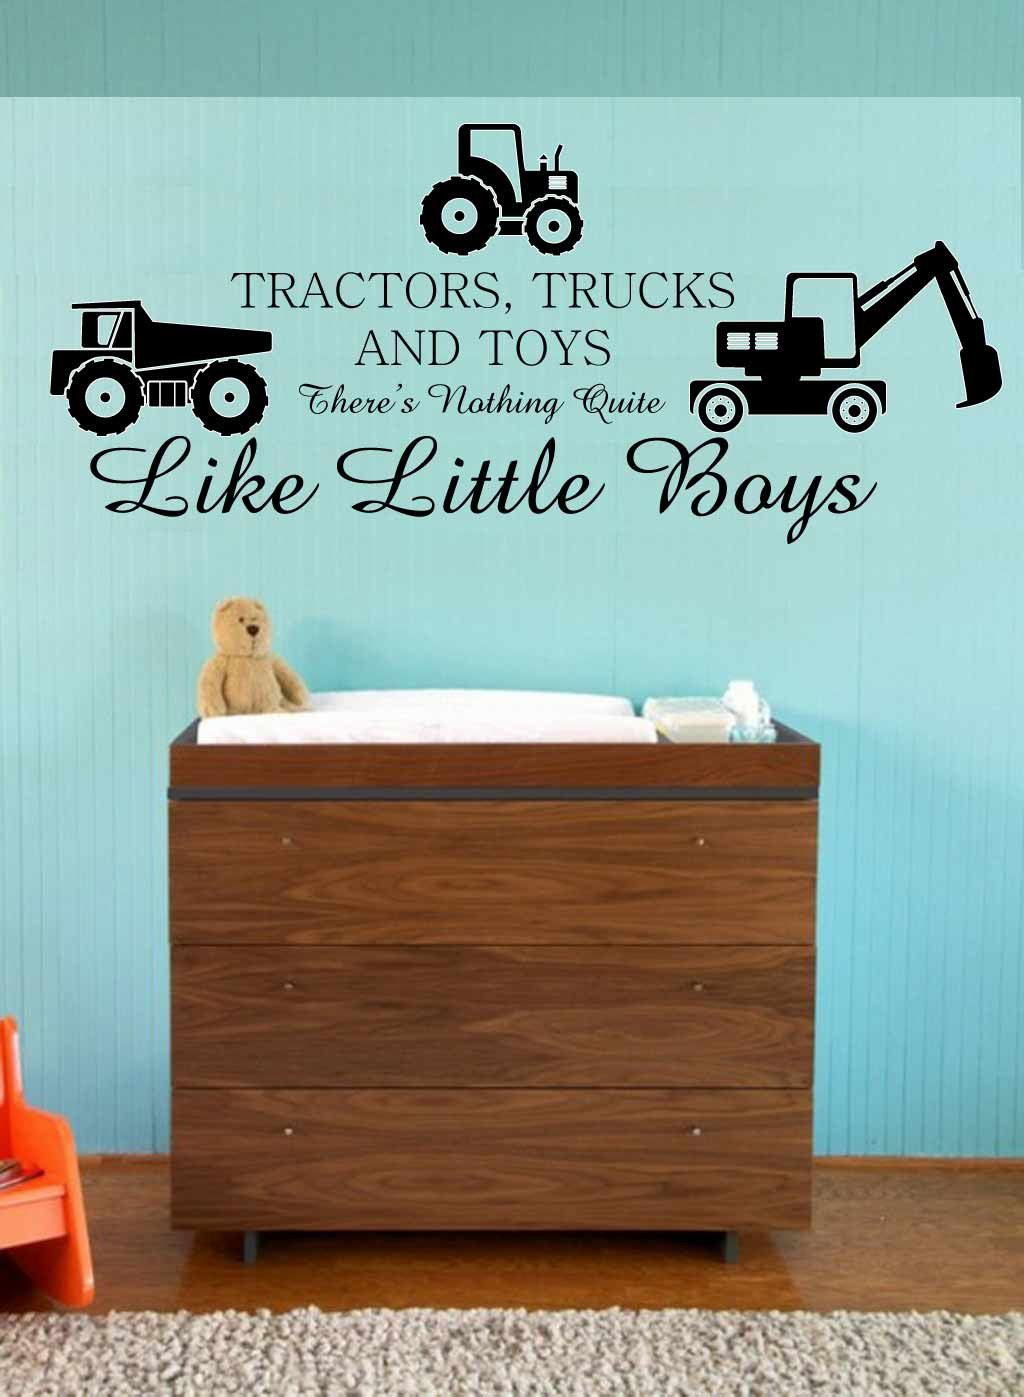 Tractors trucks and toys nothing quite like little boys vinyl tractors trucks and toys nothing quite like little boys vinyl wall decal amipublicfo Images